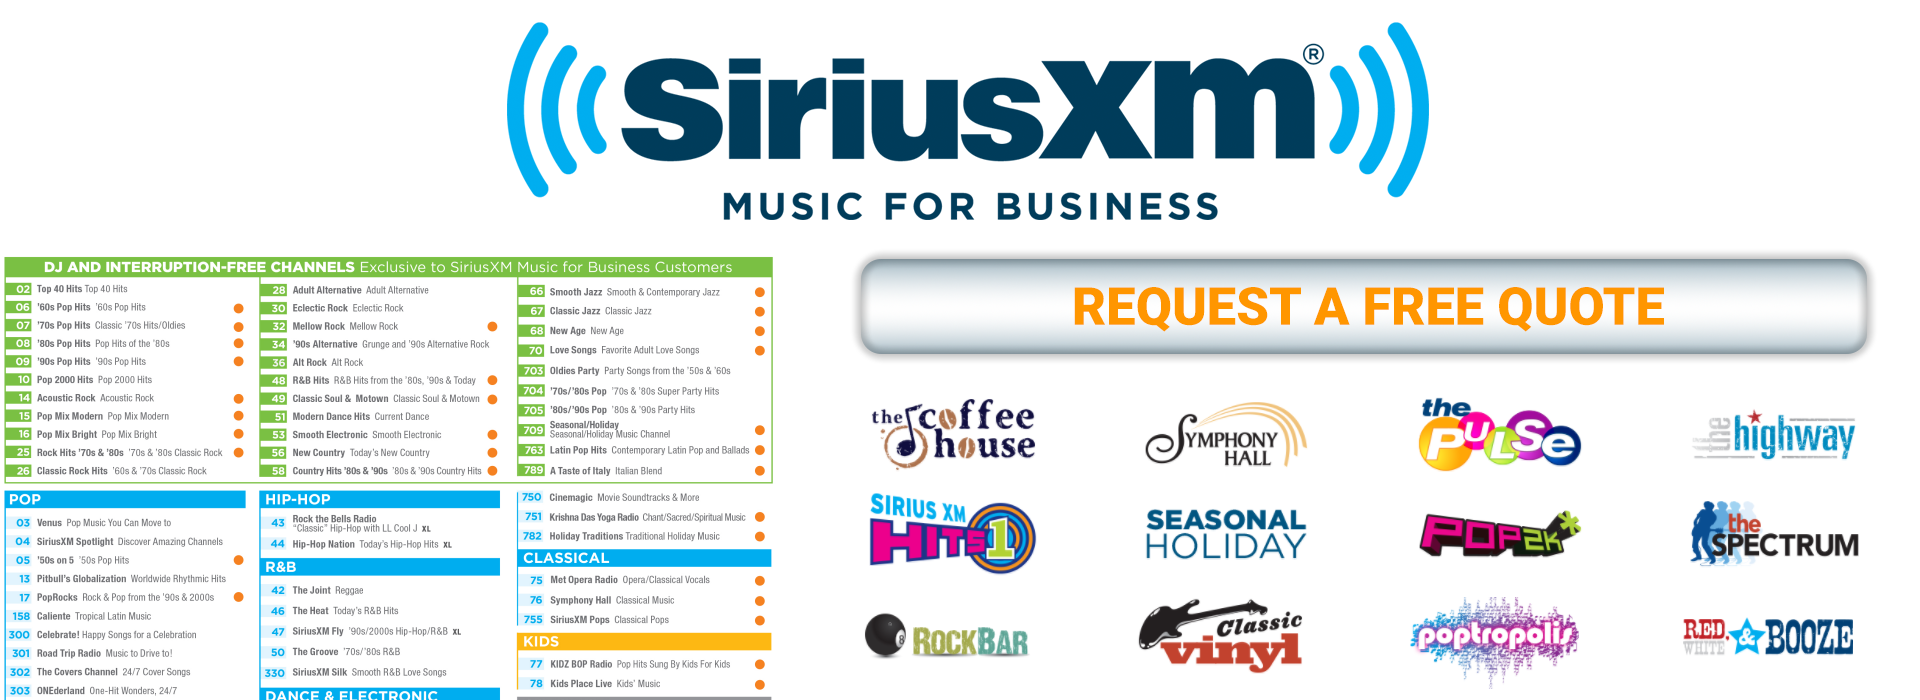 Free SiriusXM Music for Business Quote